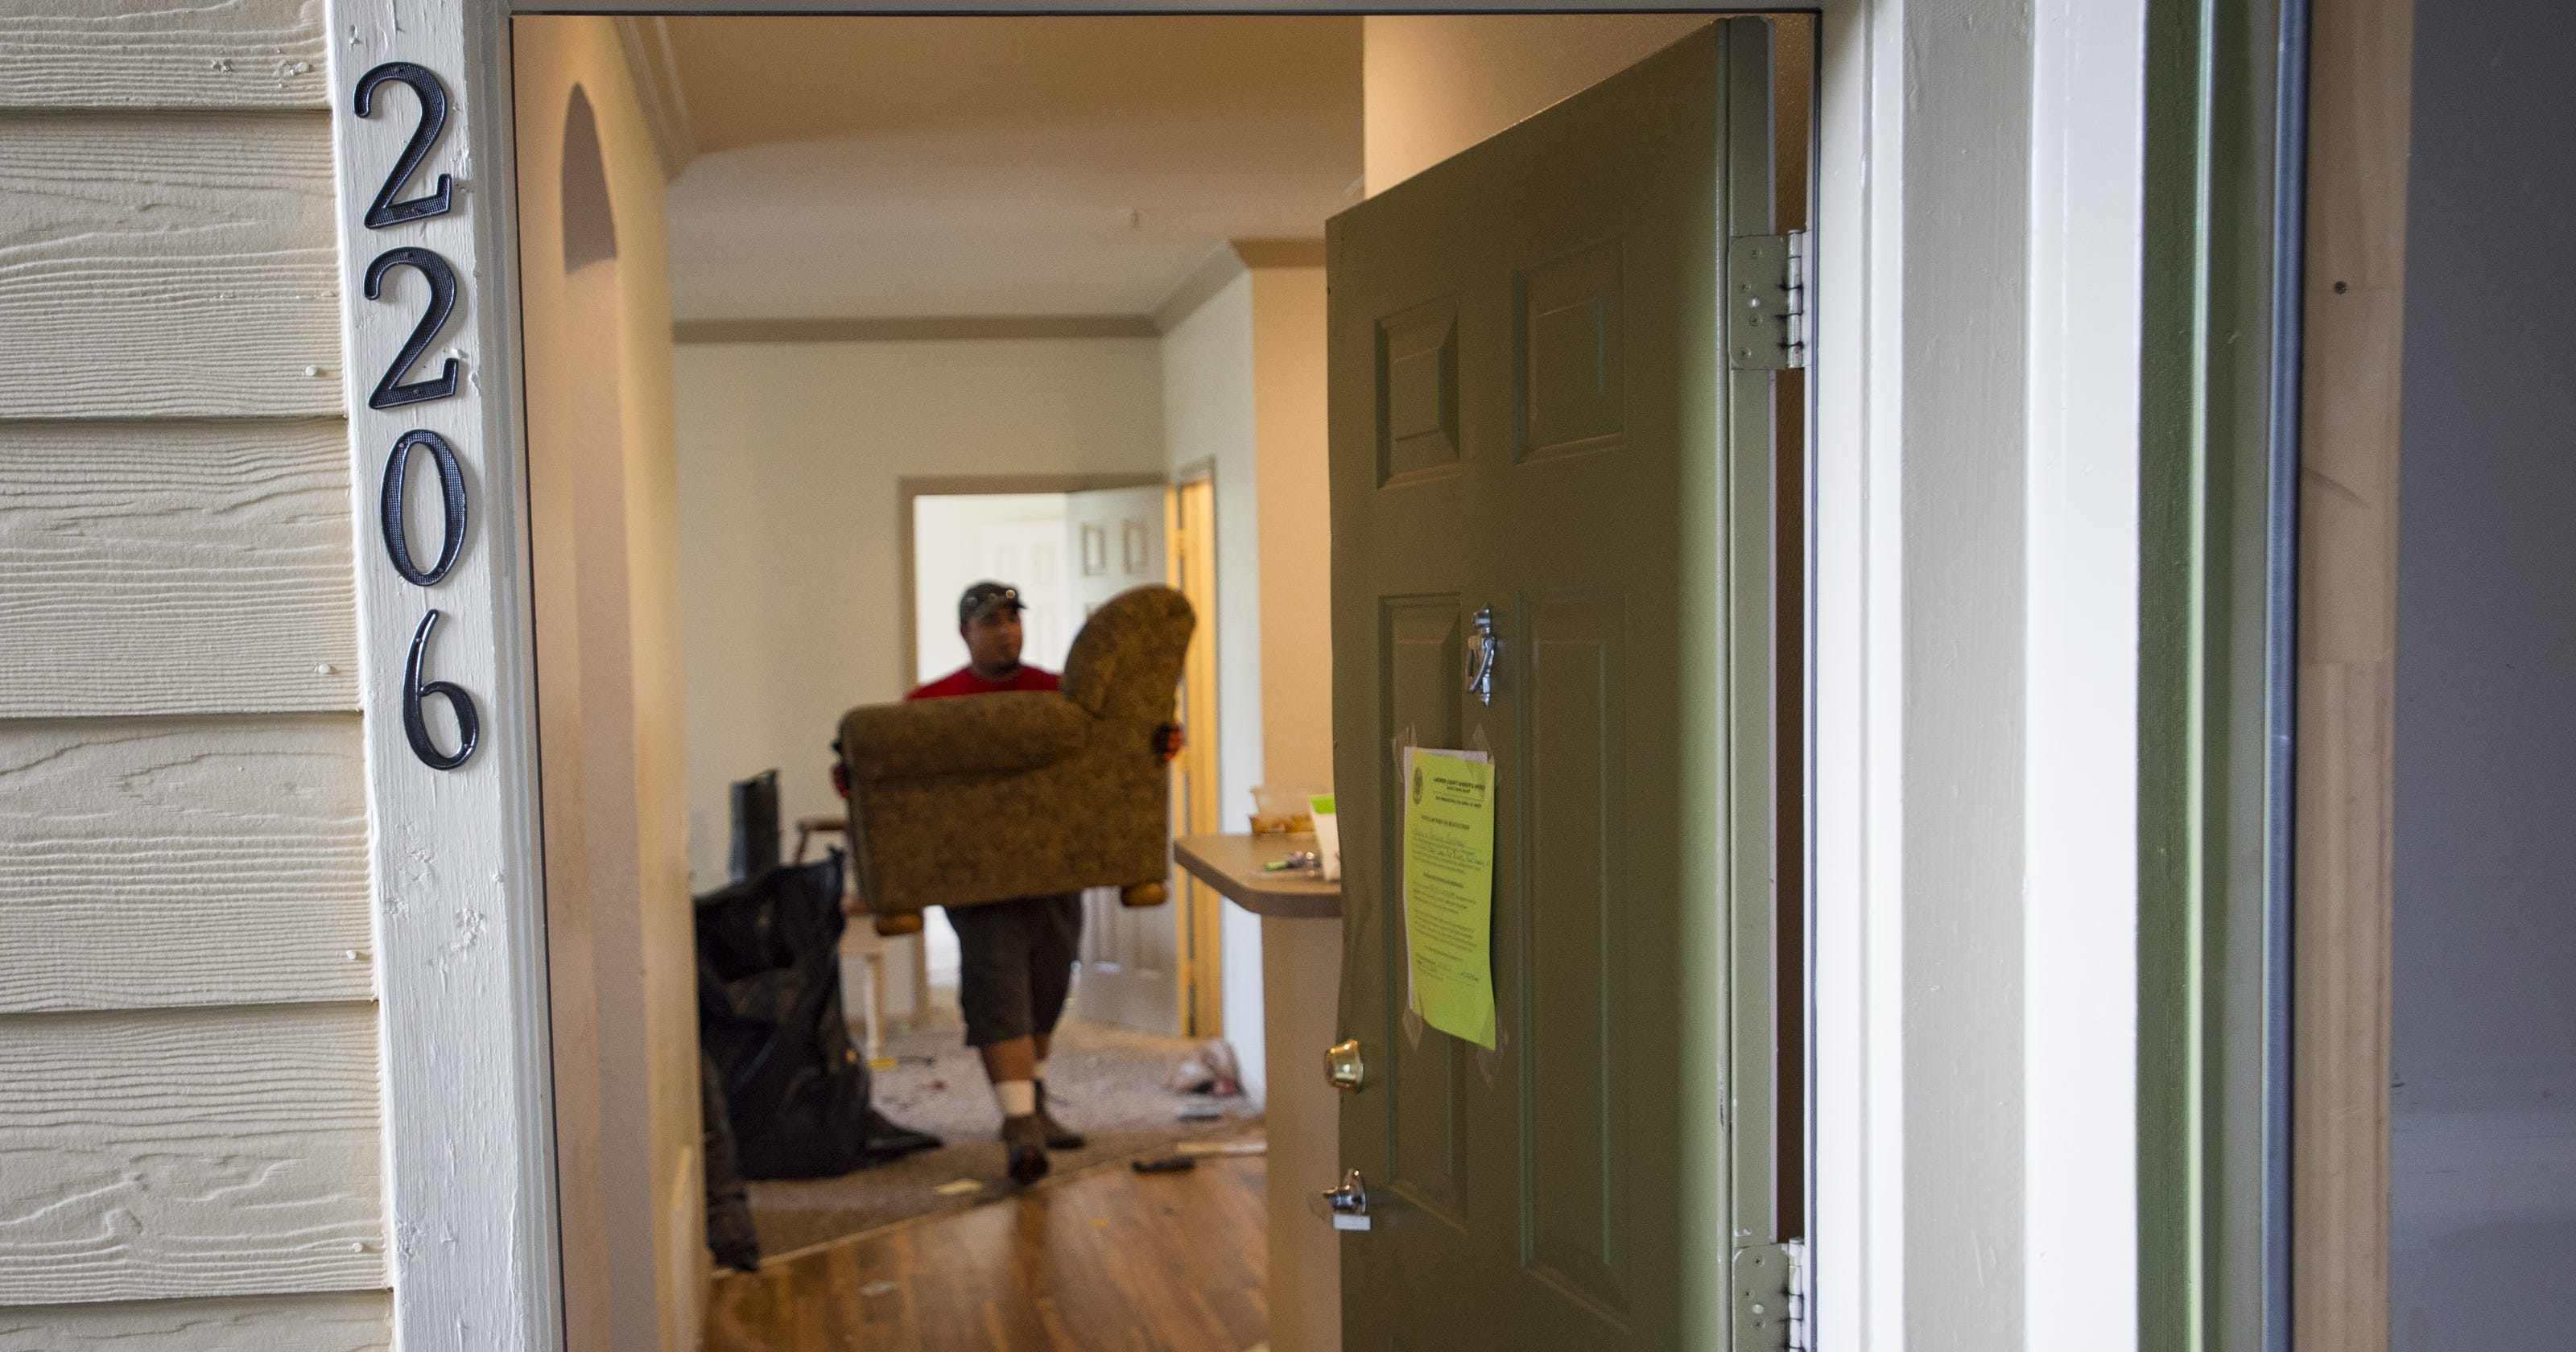 Colorado ranks poorly on renters' rights, with mixed results on